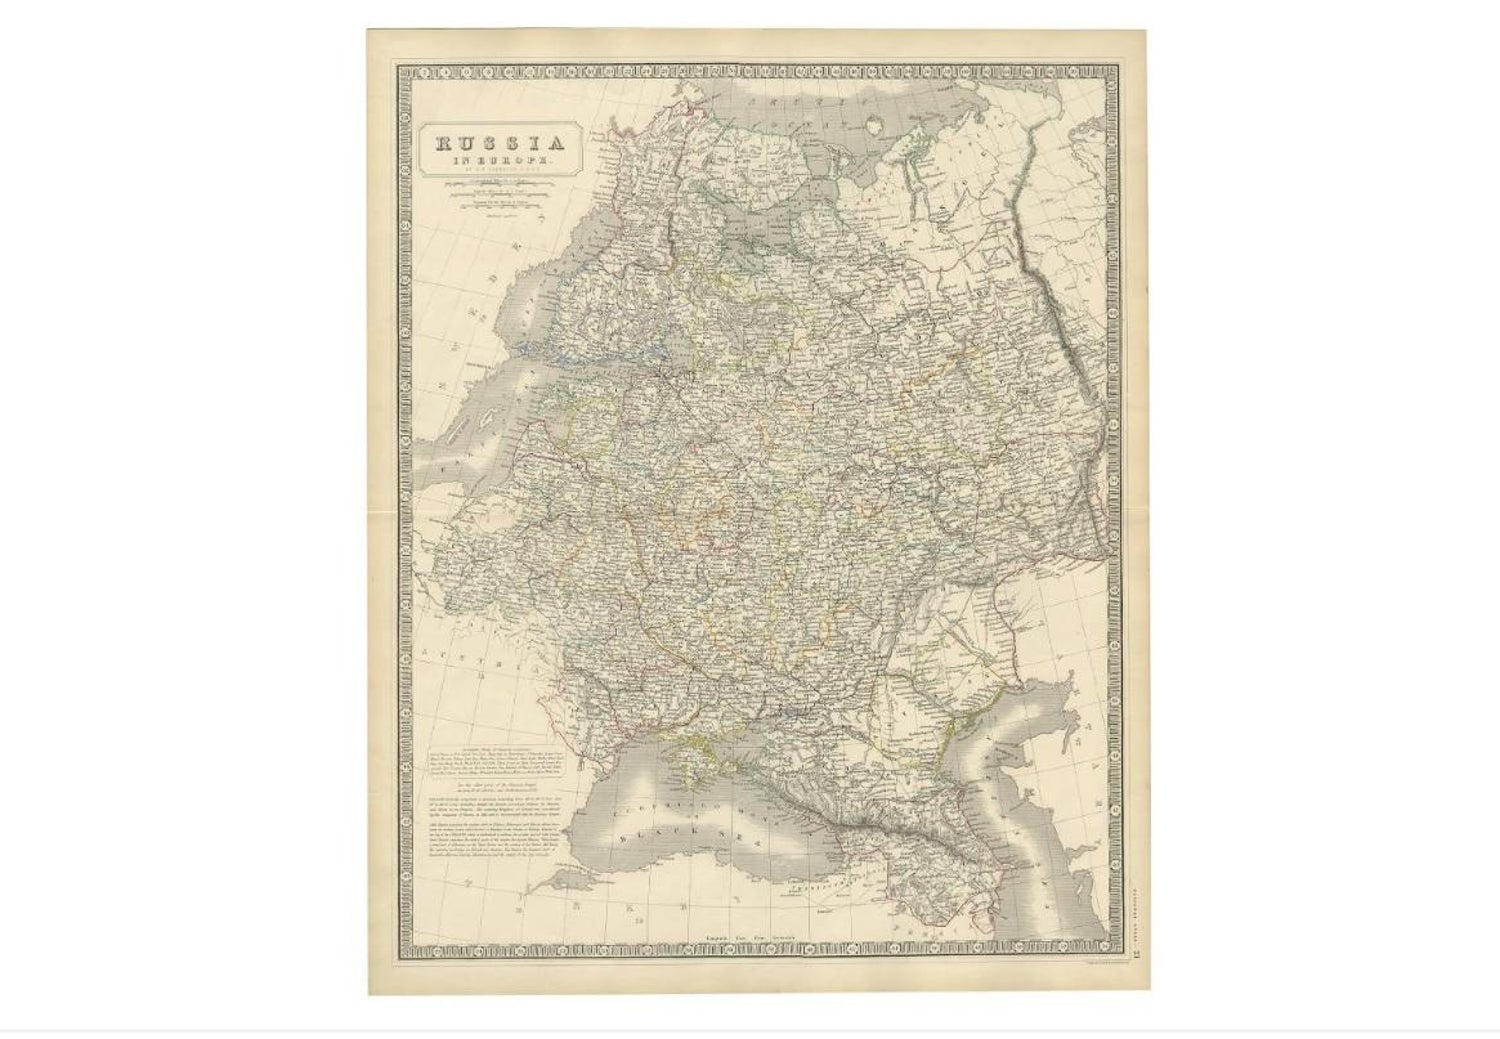 Antique Map of Russia \'in Europe\' by W. & A.K. Johnston, circa 1850